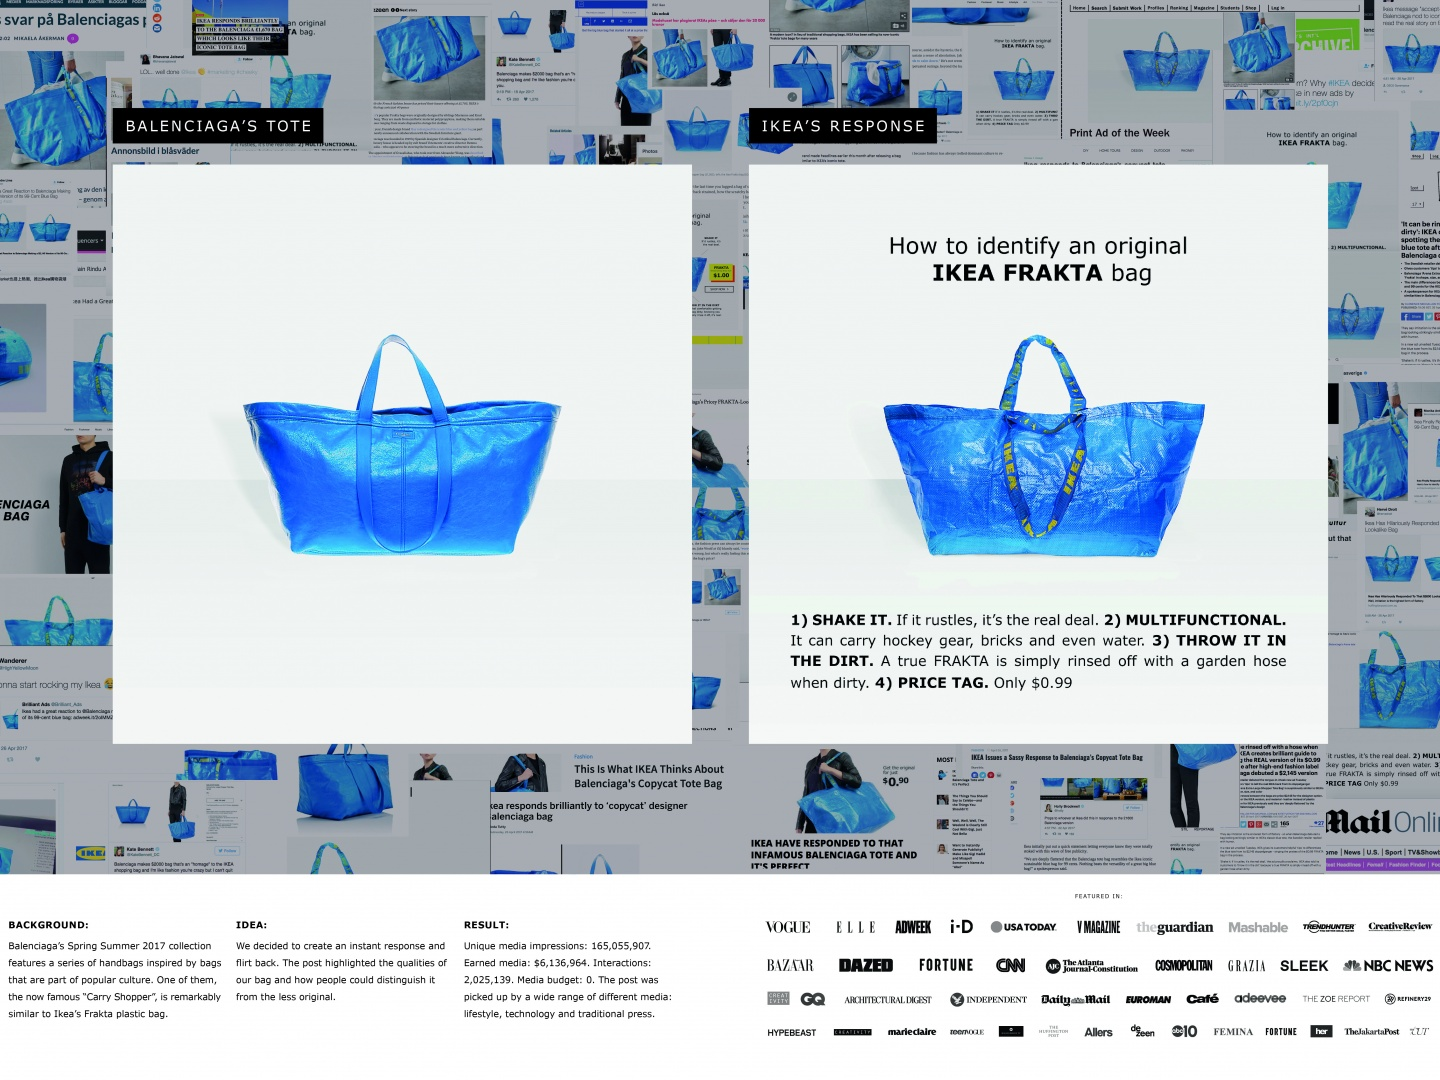 Ikea Responds to Balenciaga Thumbnail